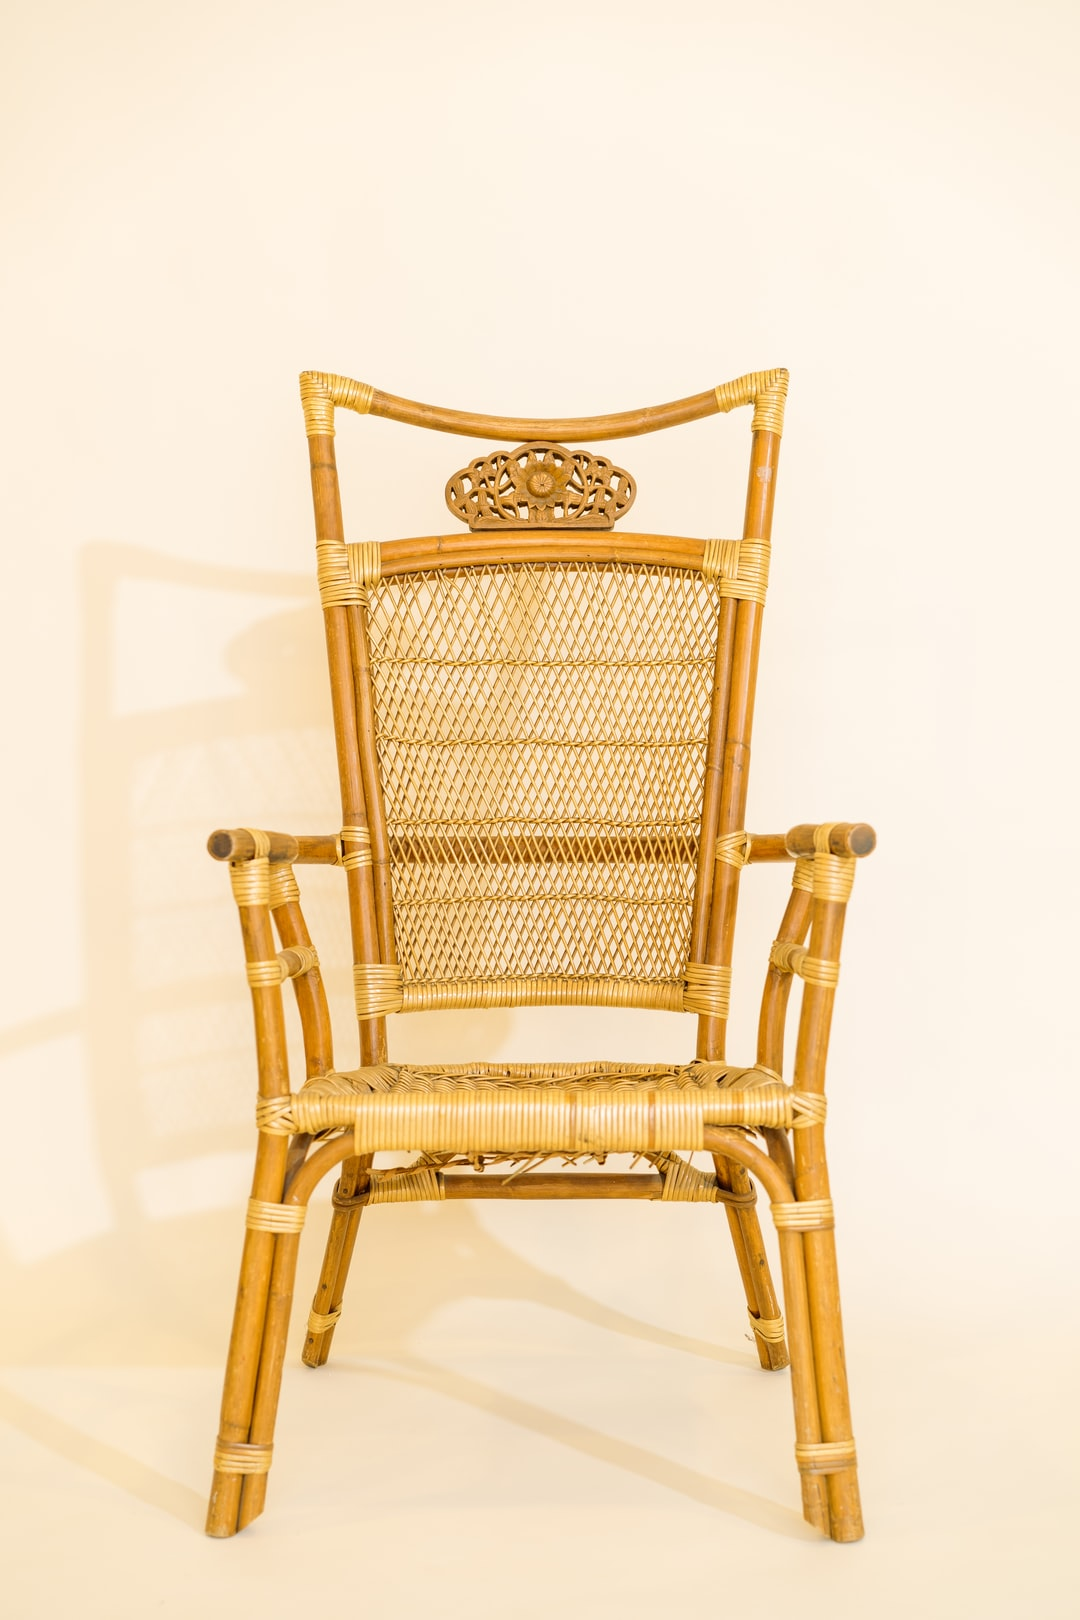 Ratan Chair Background Plate Yellow Cream Seamless Background